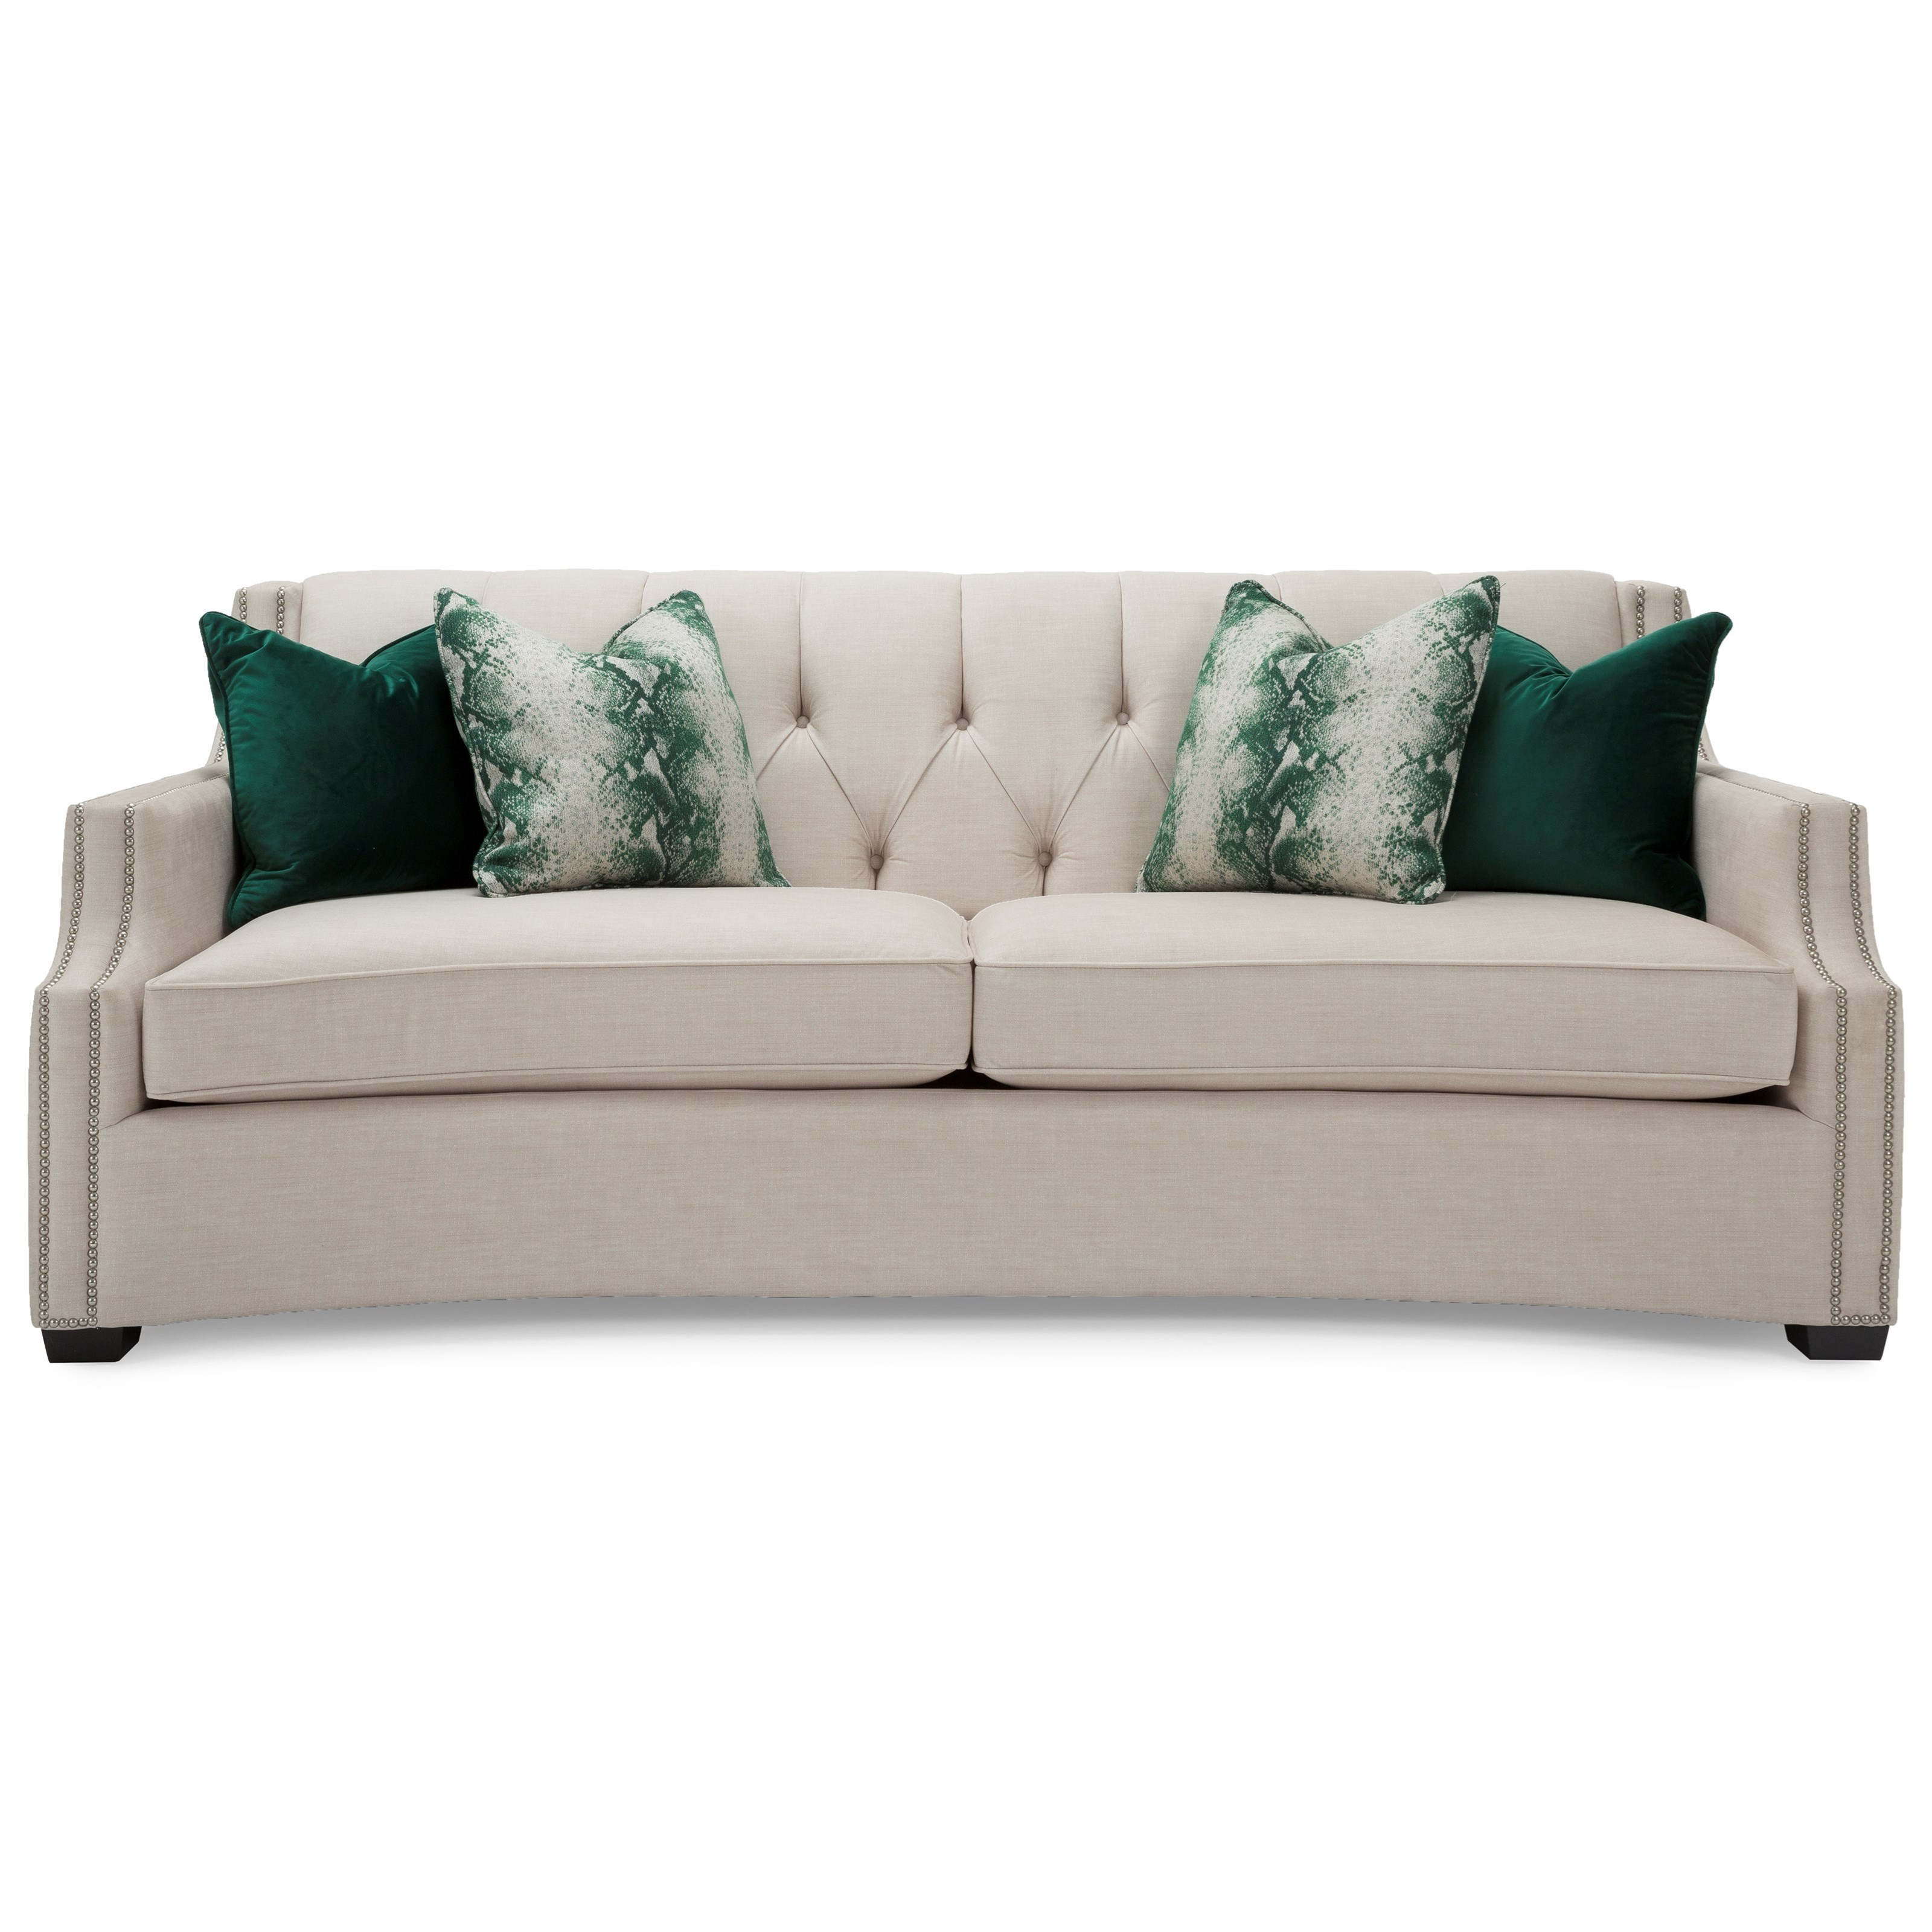 2789 Sofa by Decor-Rest at Rooms for Less